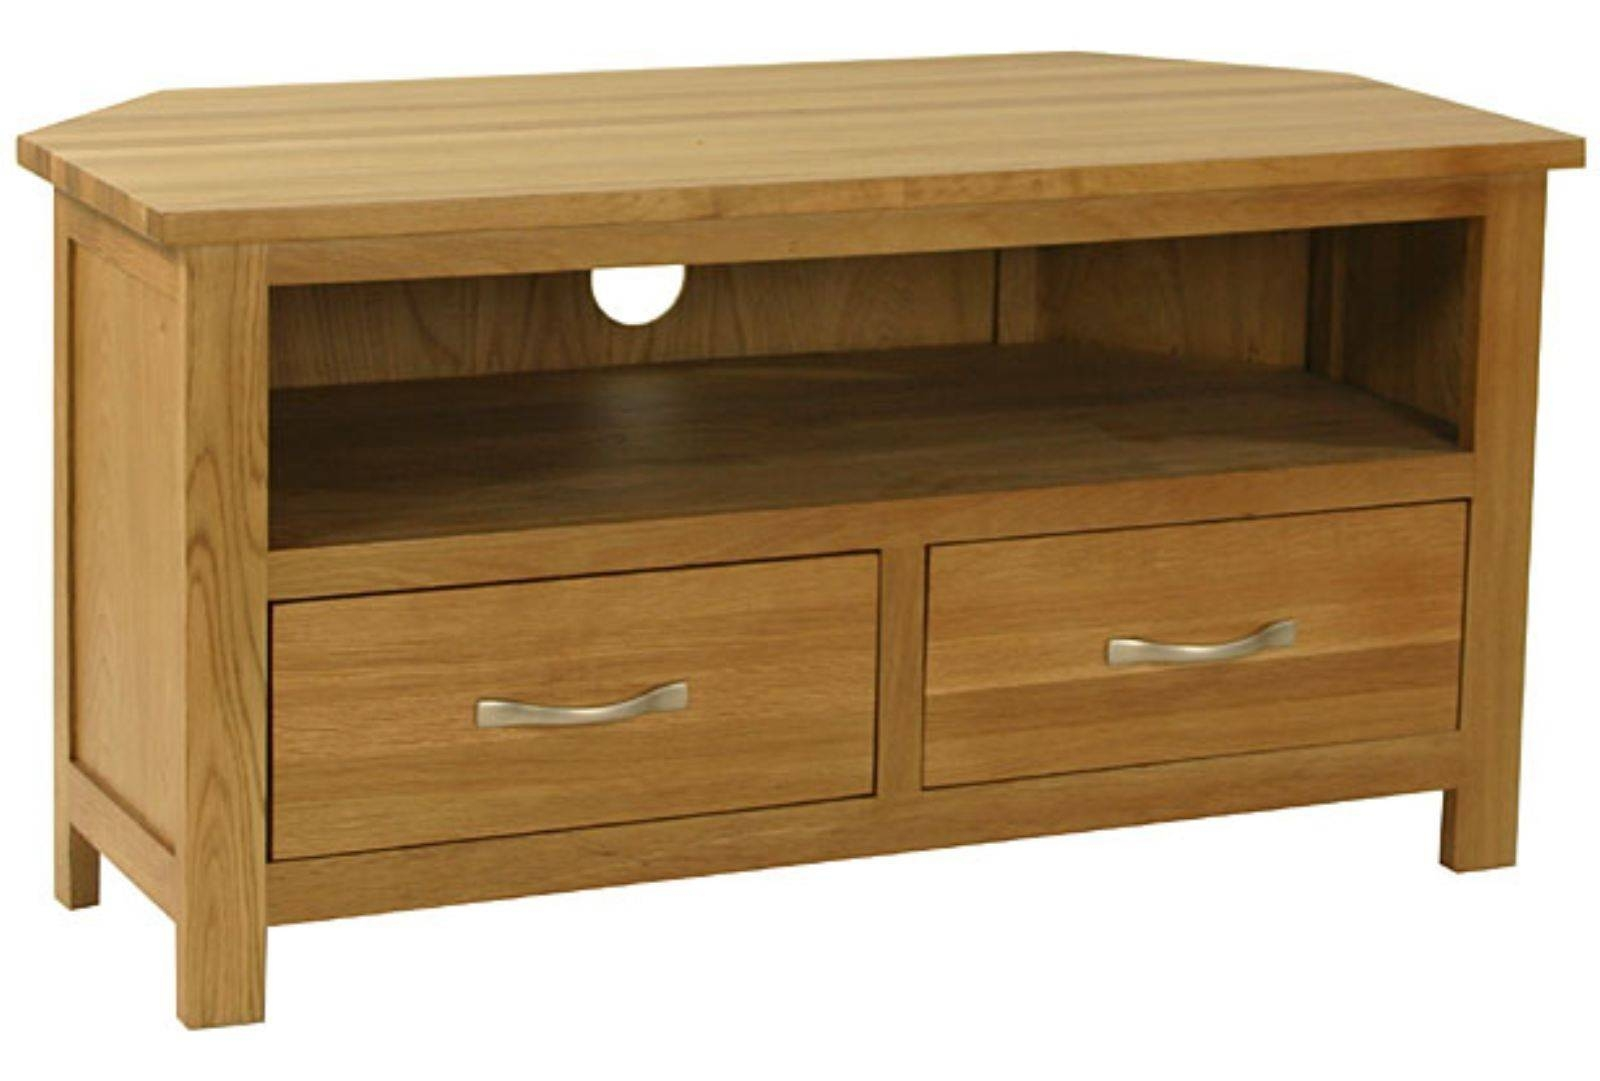 Nursing Home Furniture Corner Tv Unit From Hill & Hill Design pertaining to Oak Corner Tv Cabinets (Image 7 of 15)